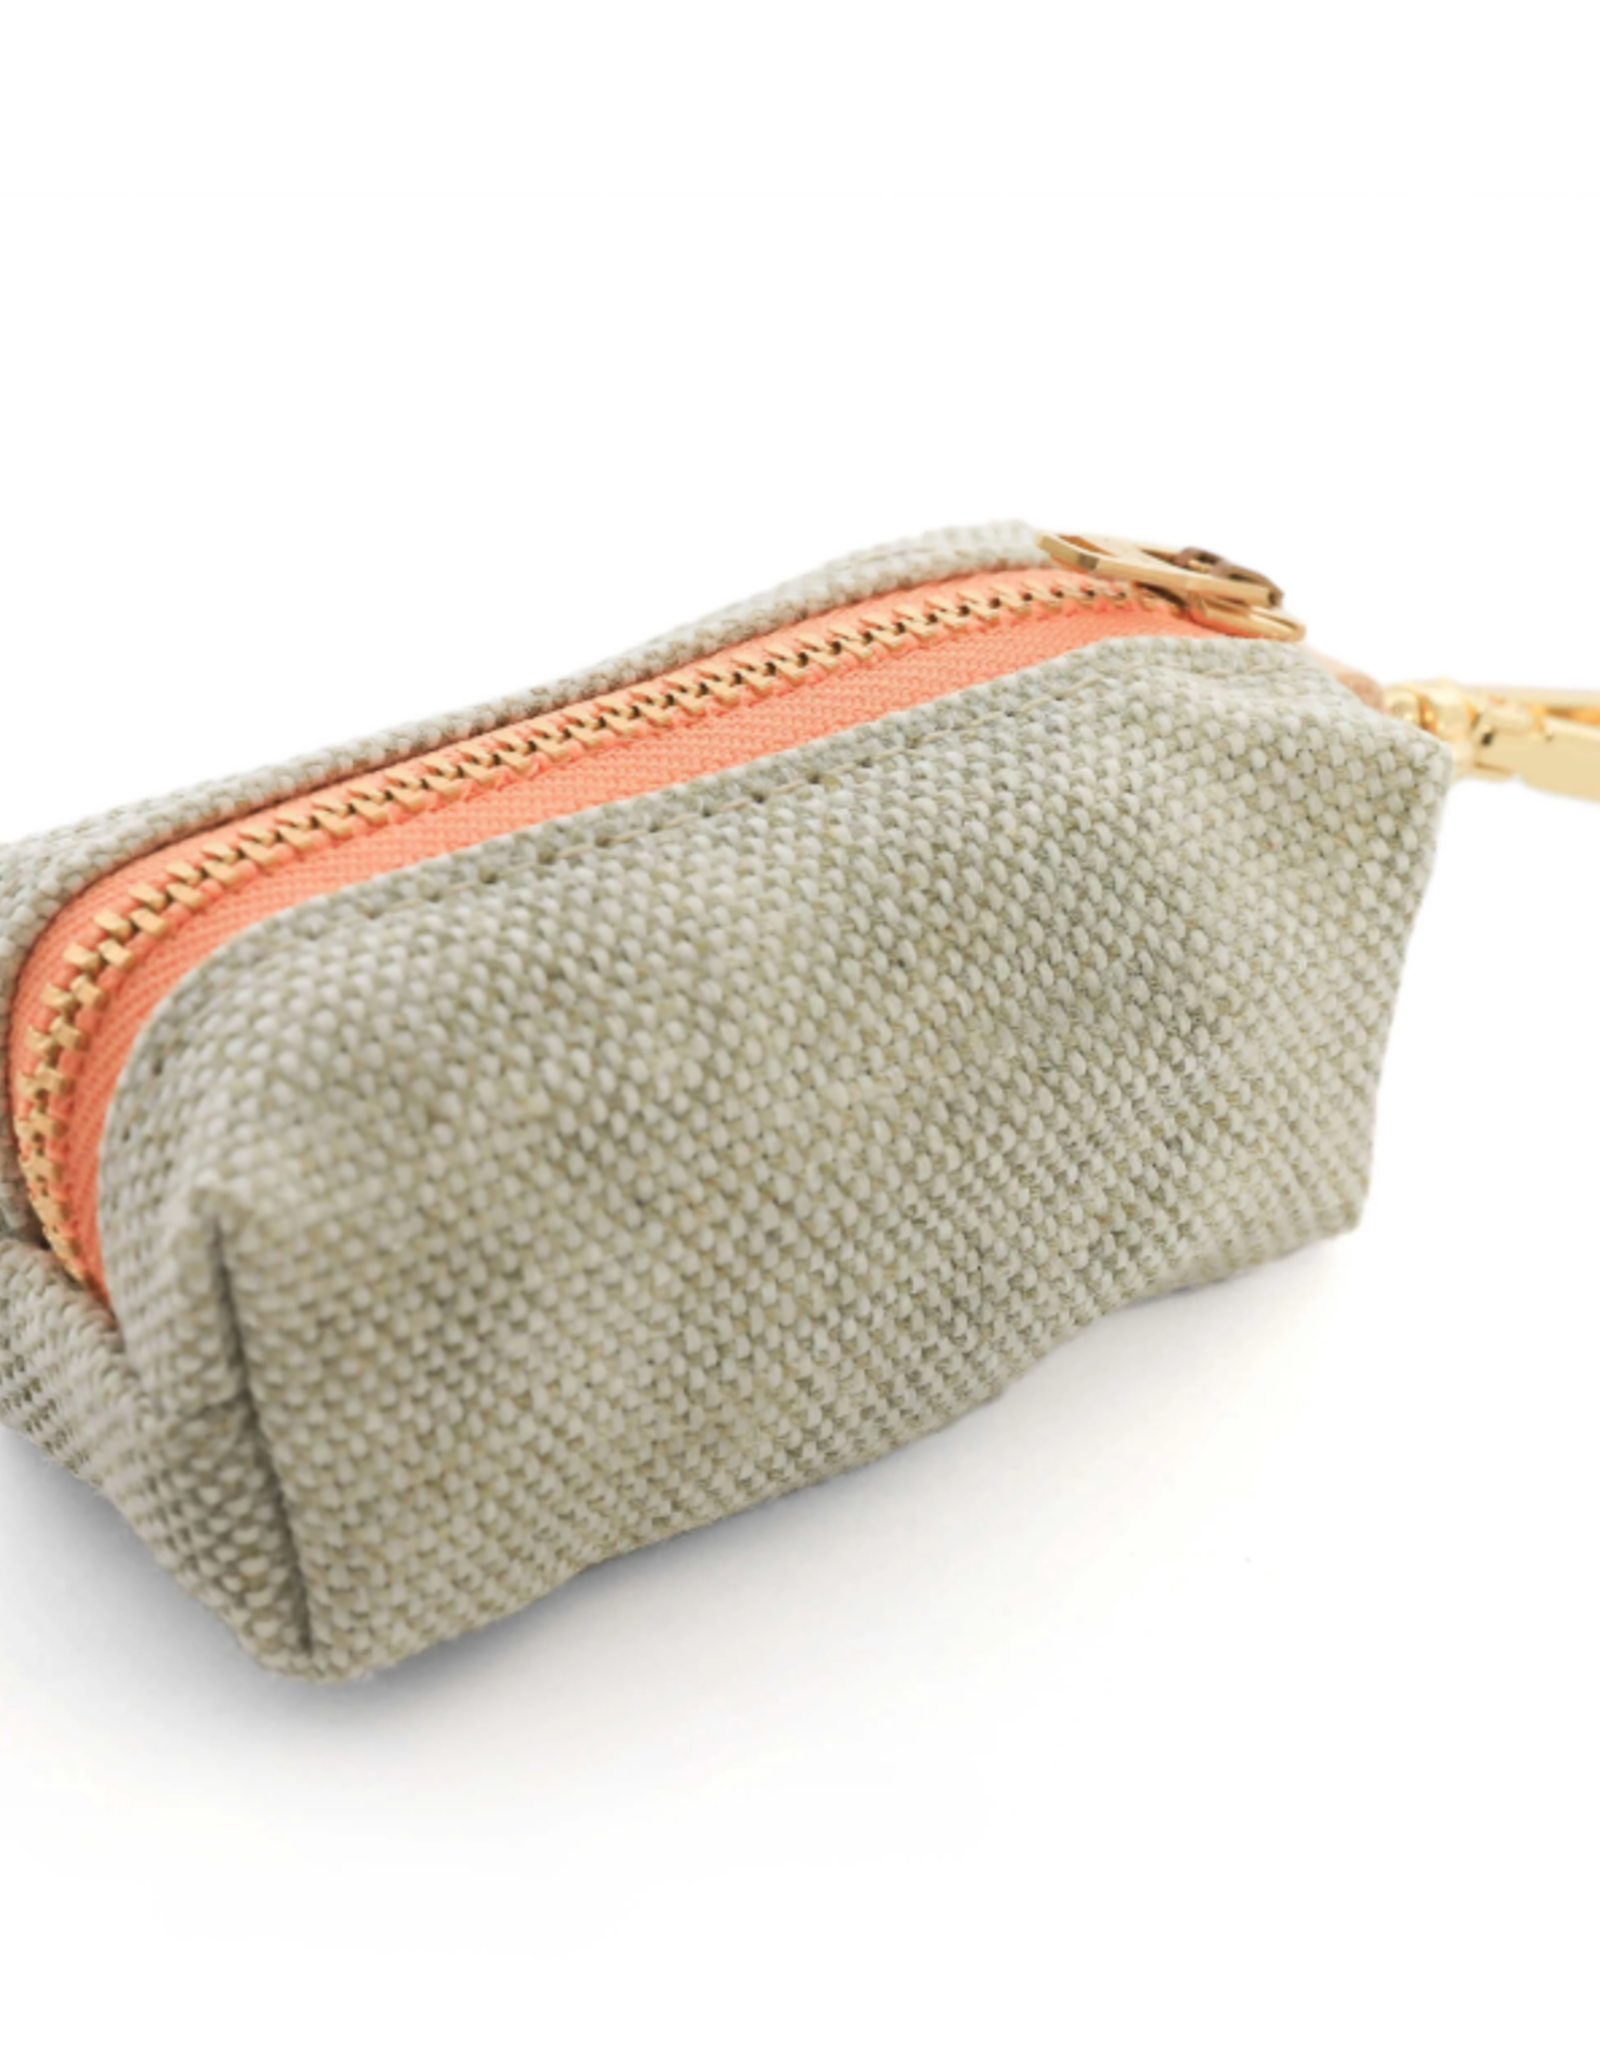 Fog Waxed Canvas Waste Bag Dispenser (choice of zipper color)